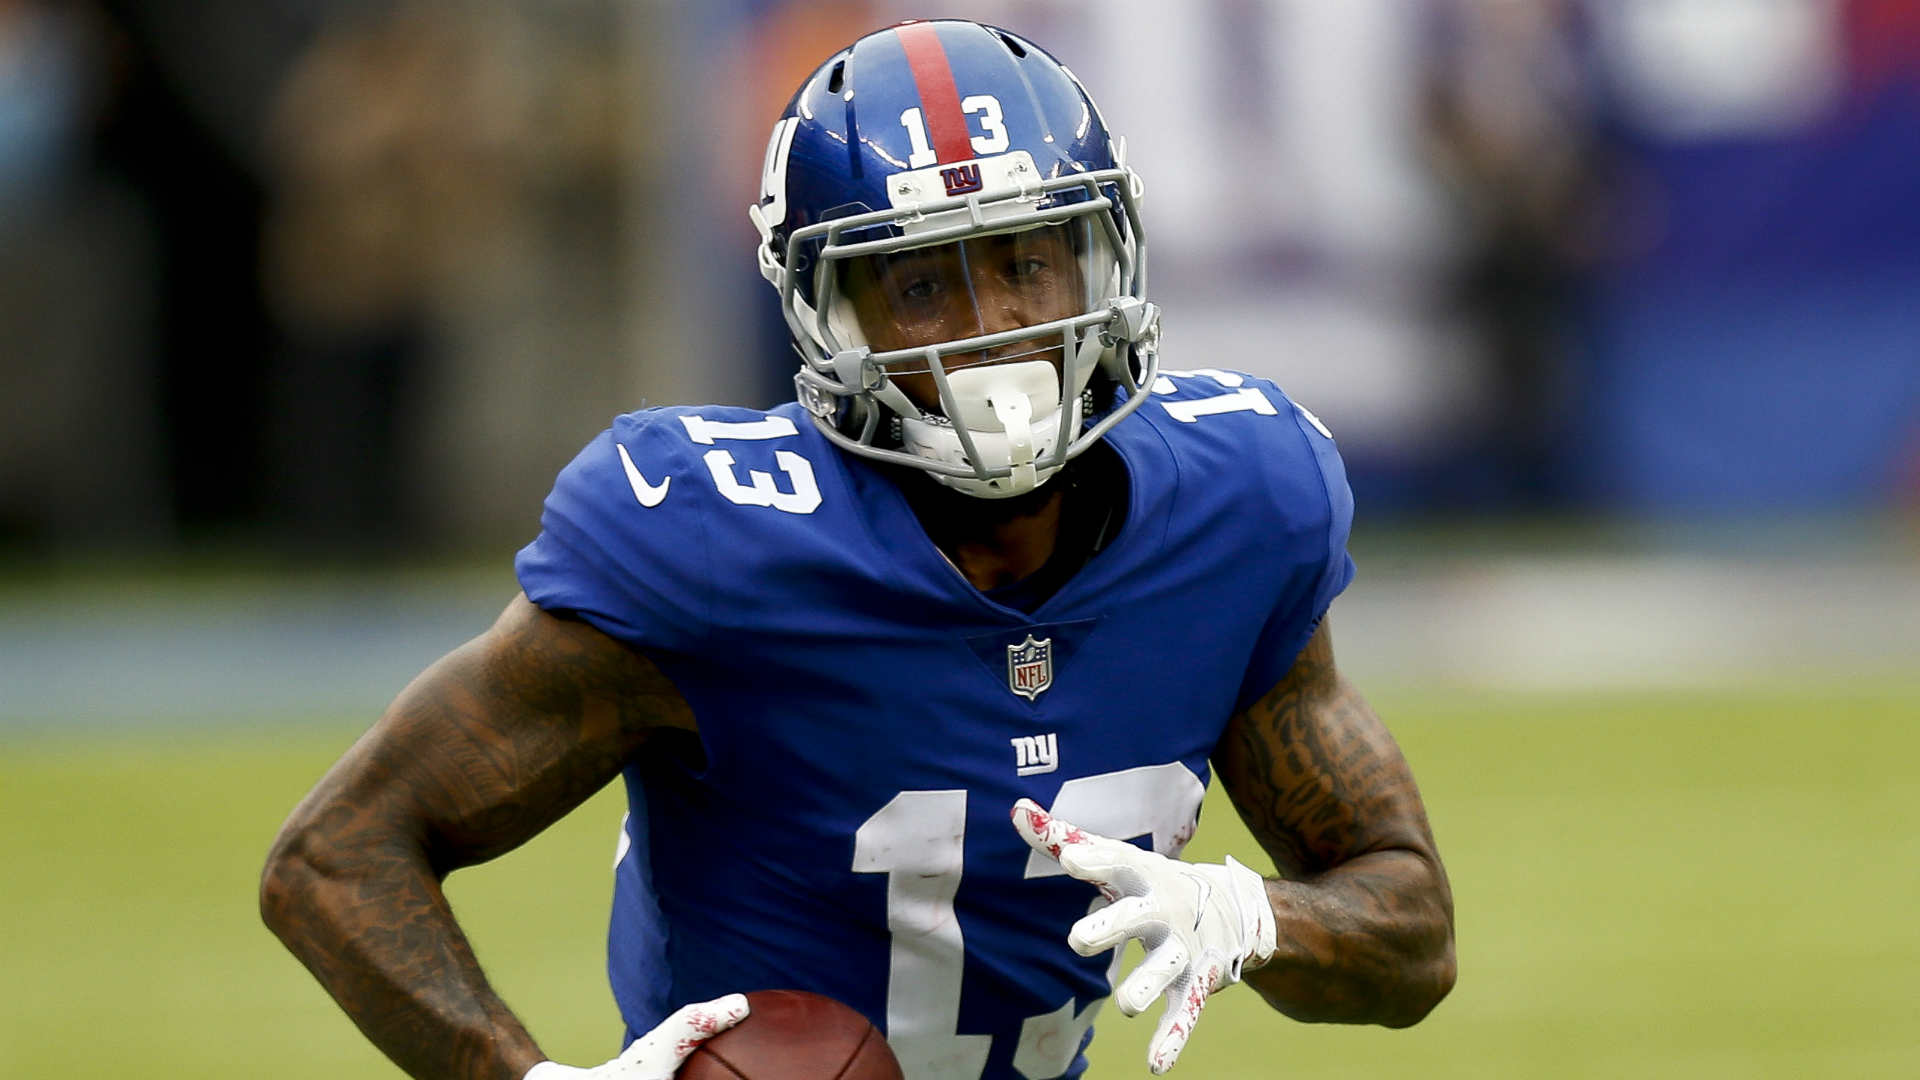 Having sealed a move to the Cleveland Browns, Odell Beckham Jr addressed the New York Giants team, staff and fans.